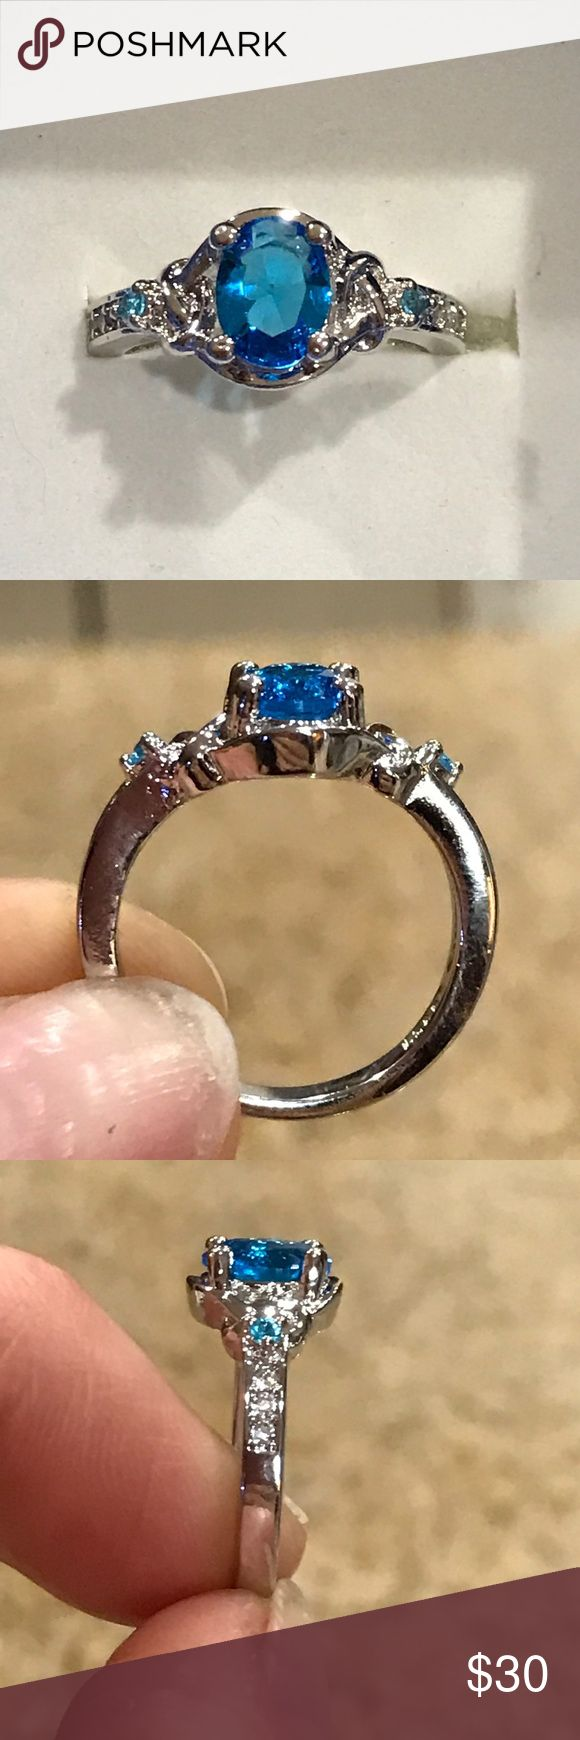 Victorian inspired blue and white topaz ring Size 7, lab created blue and white topaz set in 925 silver overlay. Beautiful modern Victorian inspired details. Jewelry Rings